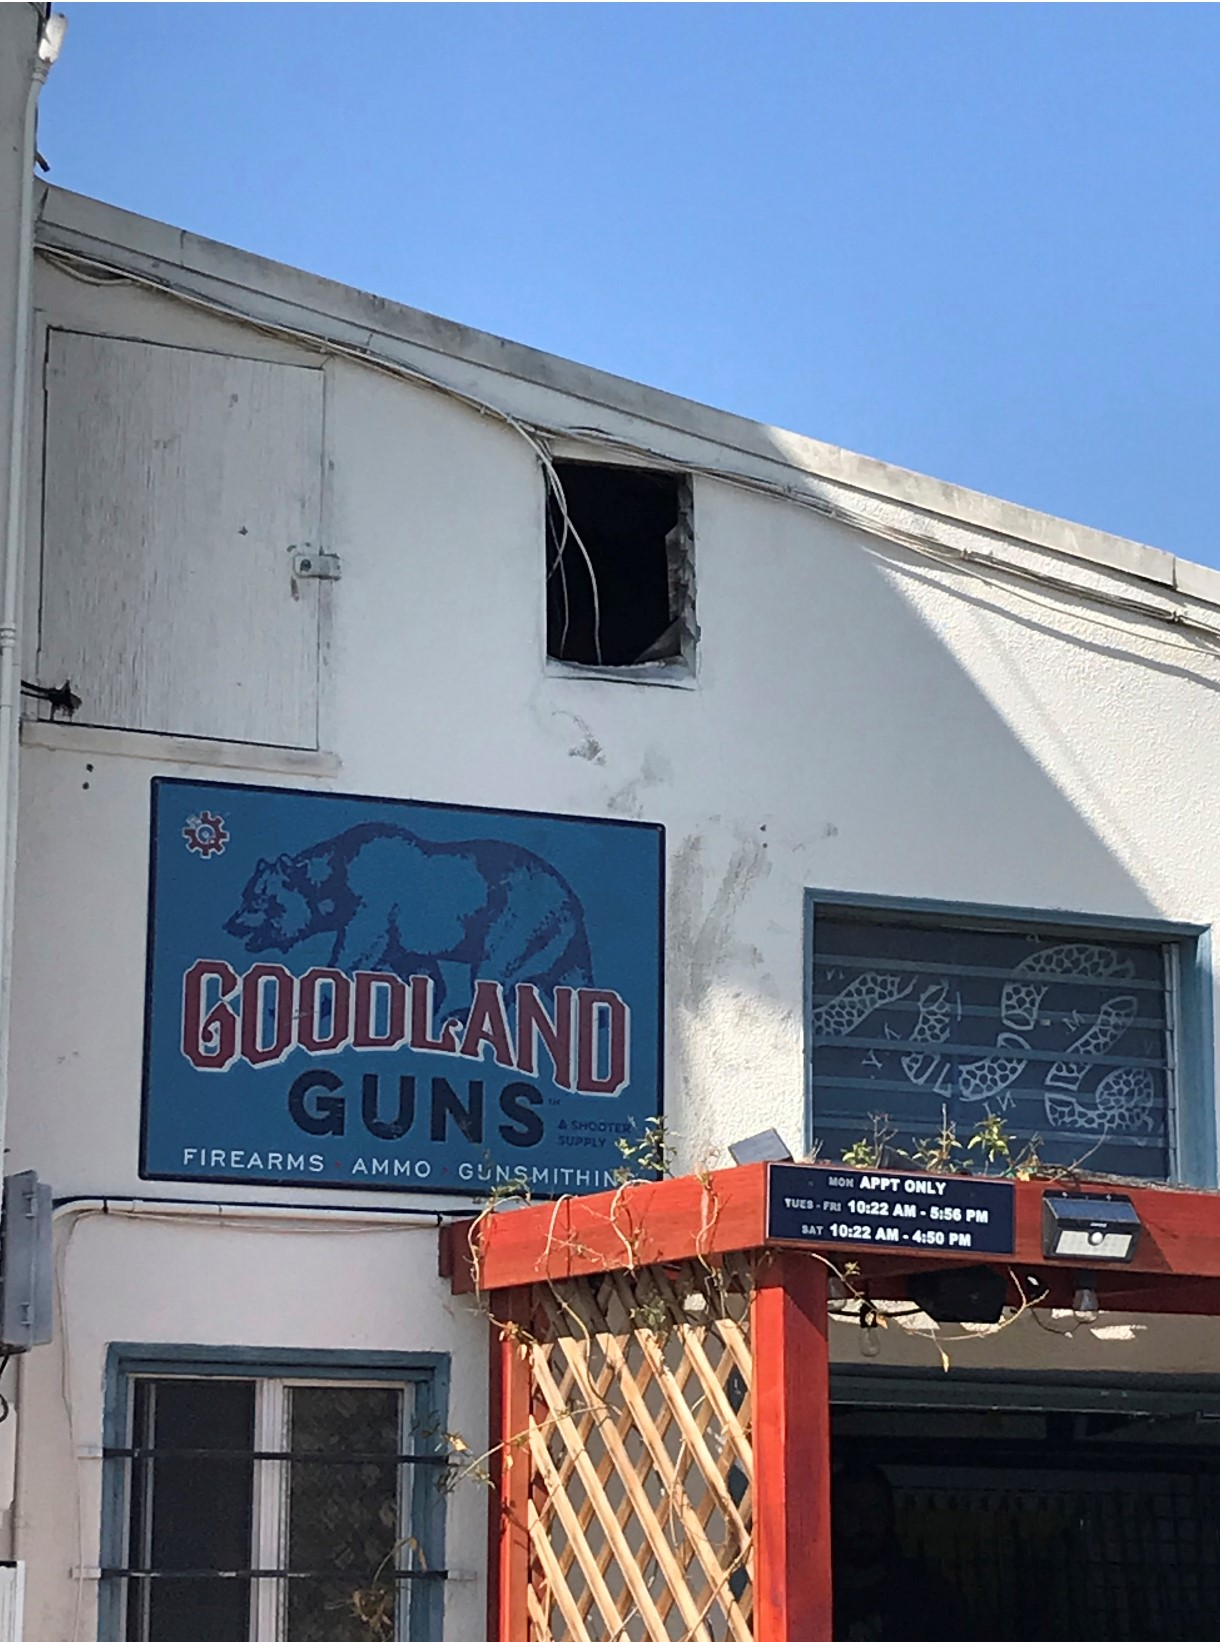 The hole in the wall where the suspect(s) entered into Goodland Guns.